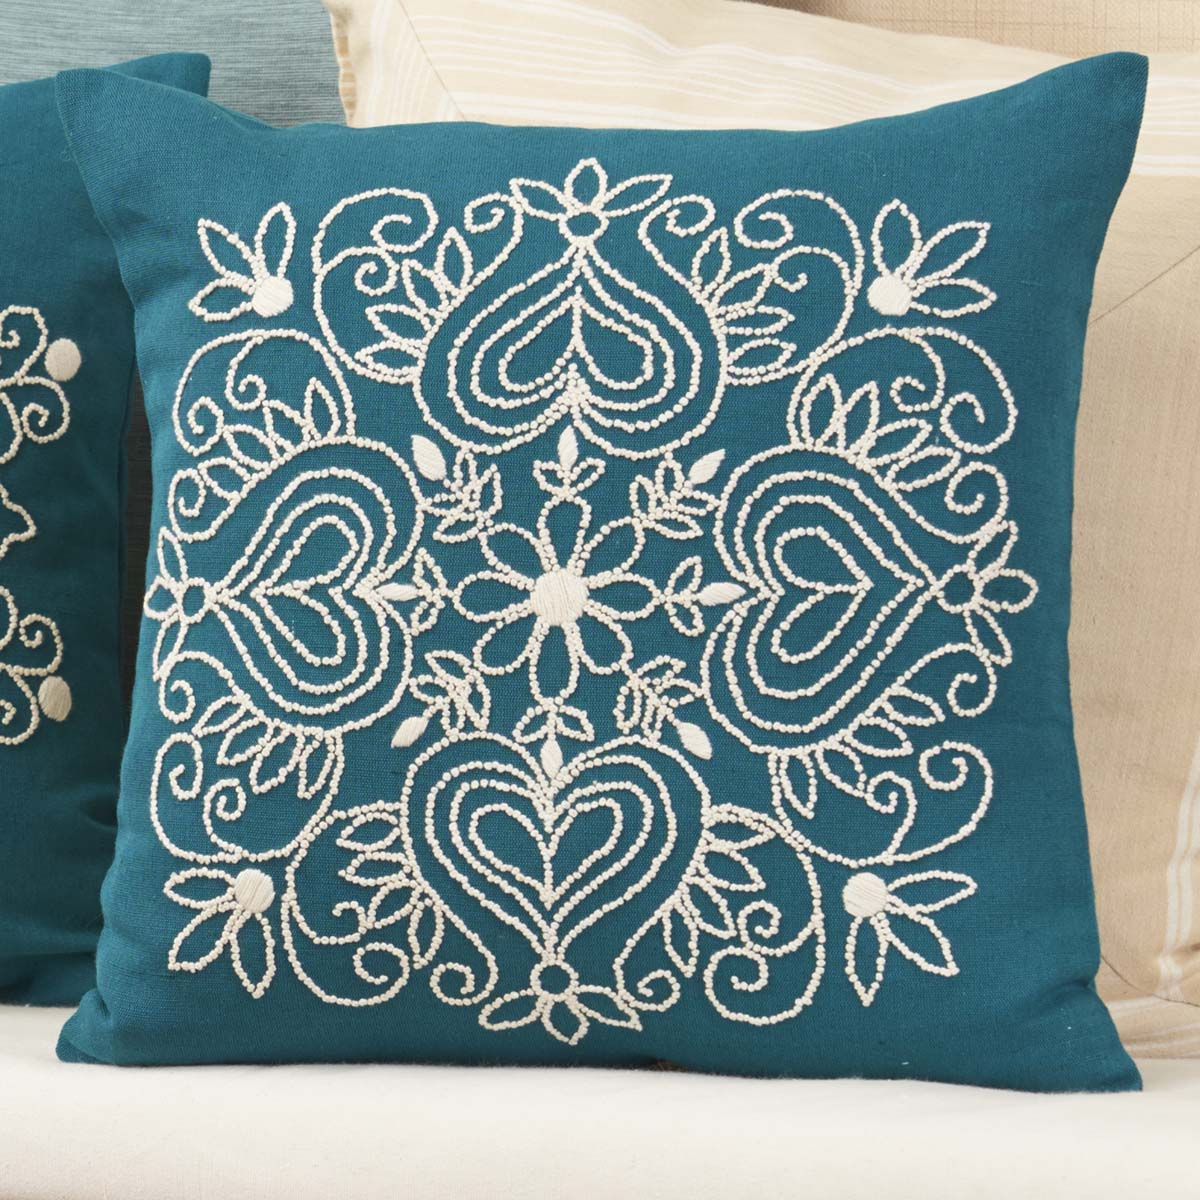 Nob Hill Candlewick Heart Pillow Cover Stamped Embroidery Kit